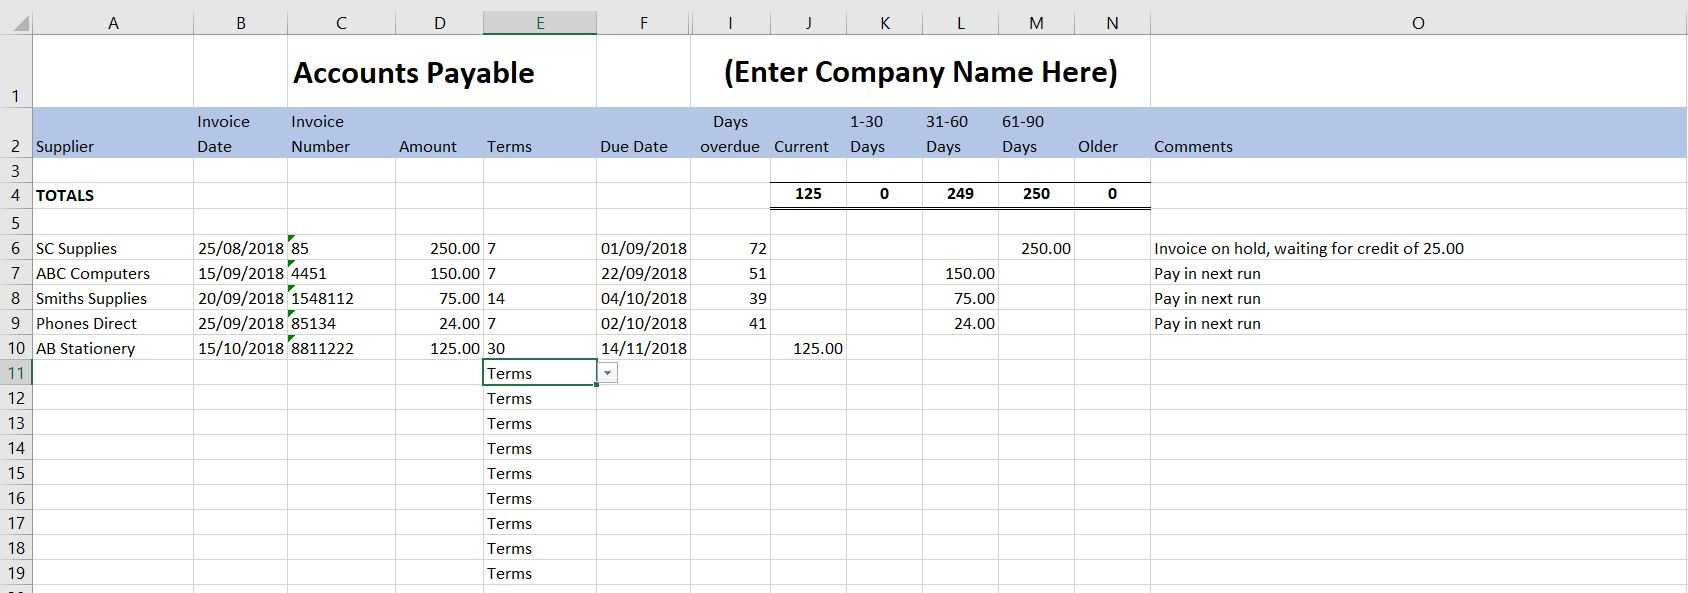 Free Excel Bookkeeping Templates - 14 Accounts Spreadsheets With Regard To Excel Accounting Templates For Small Businesses